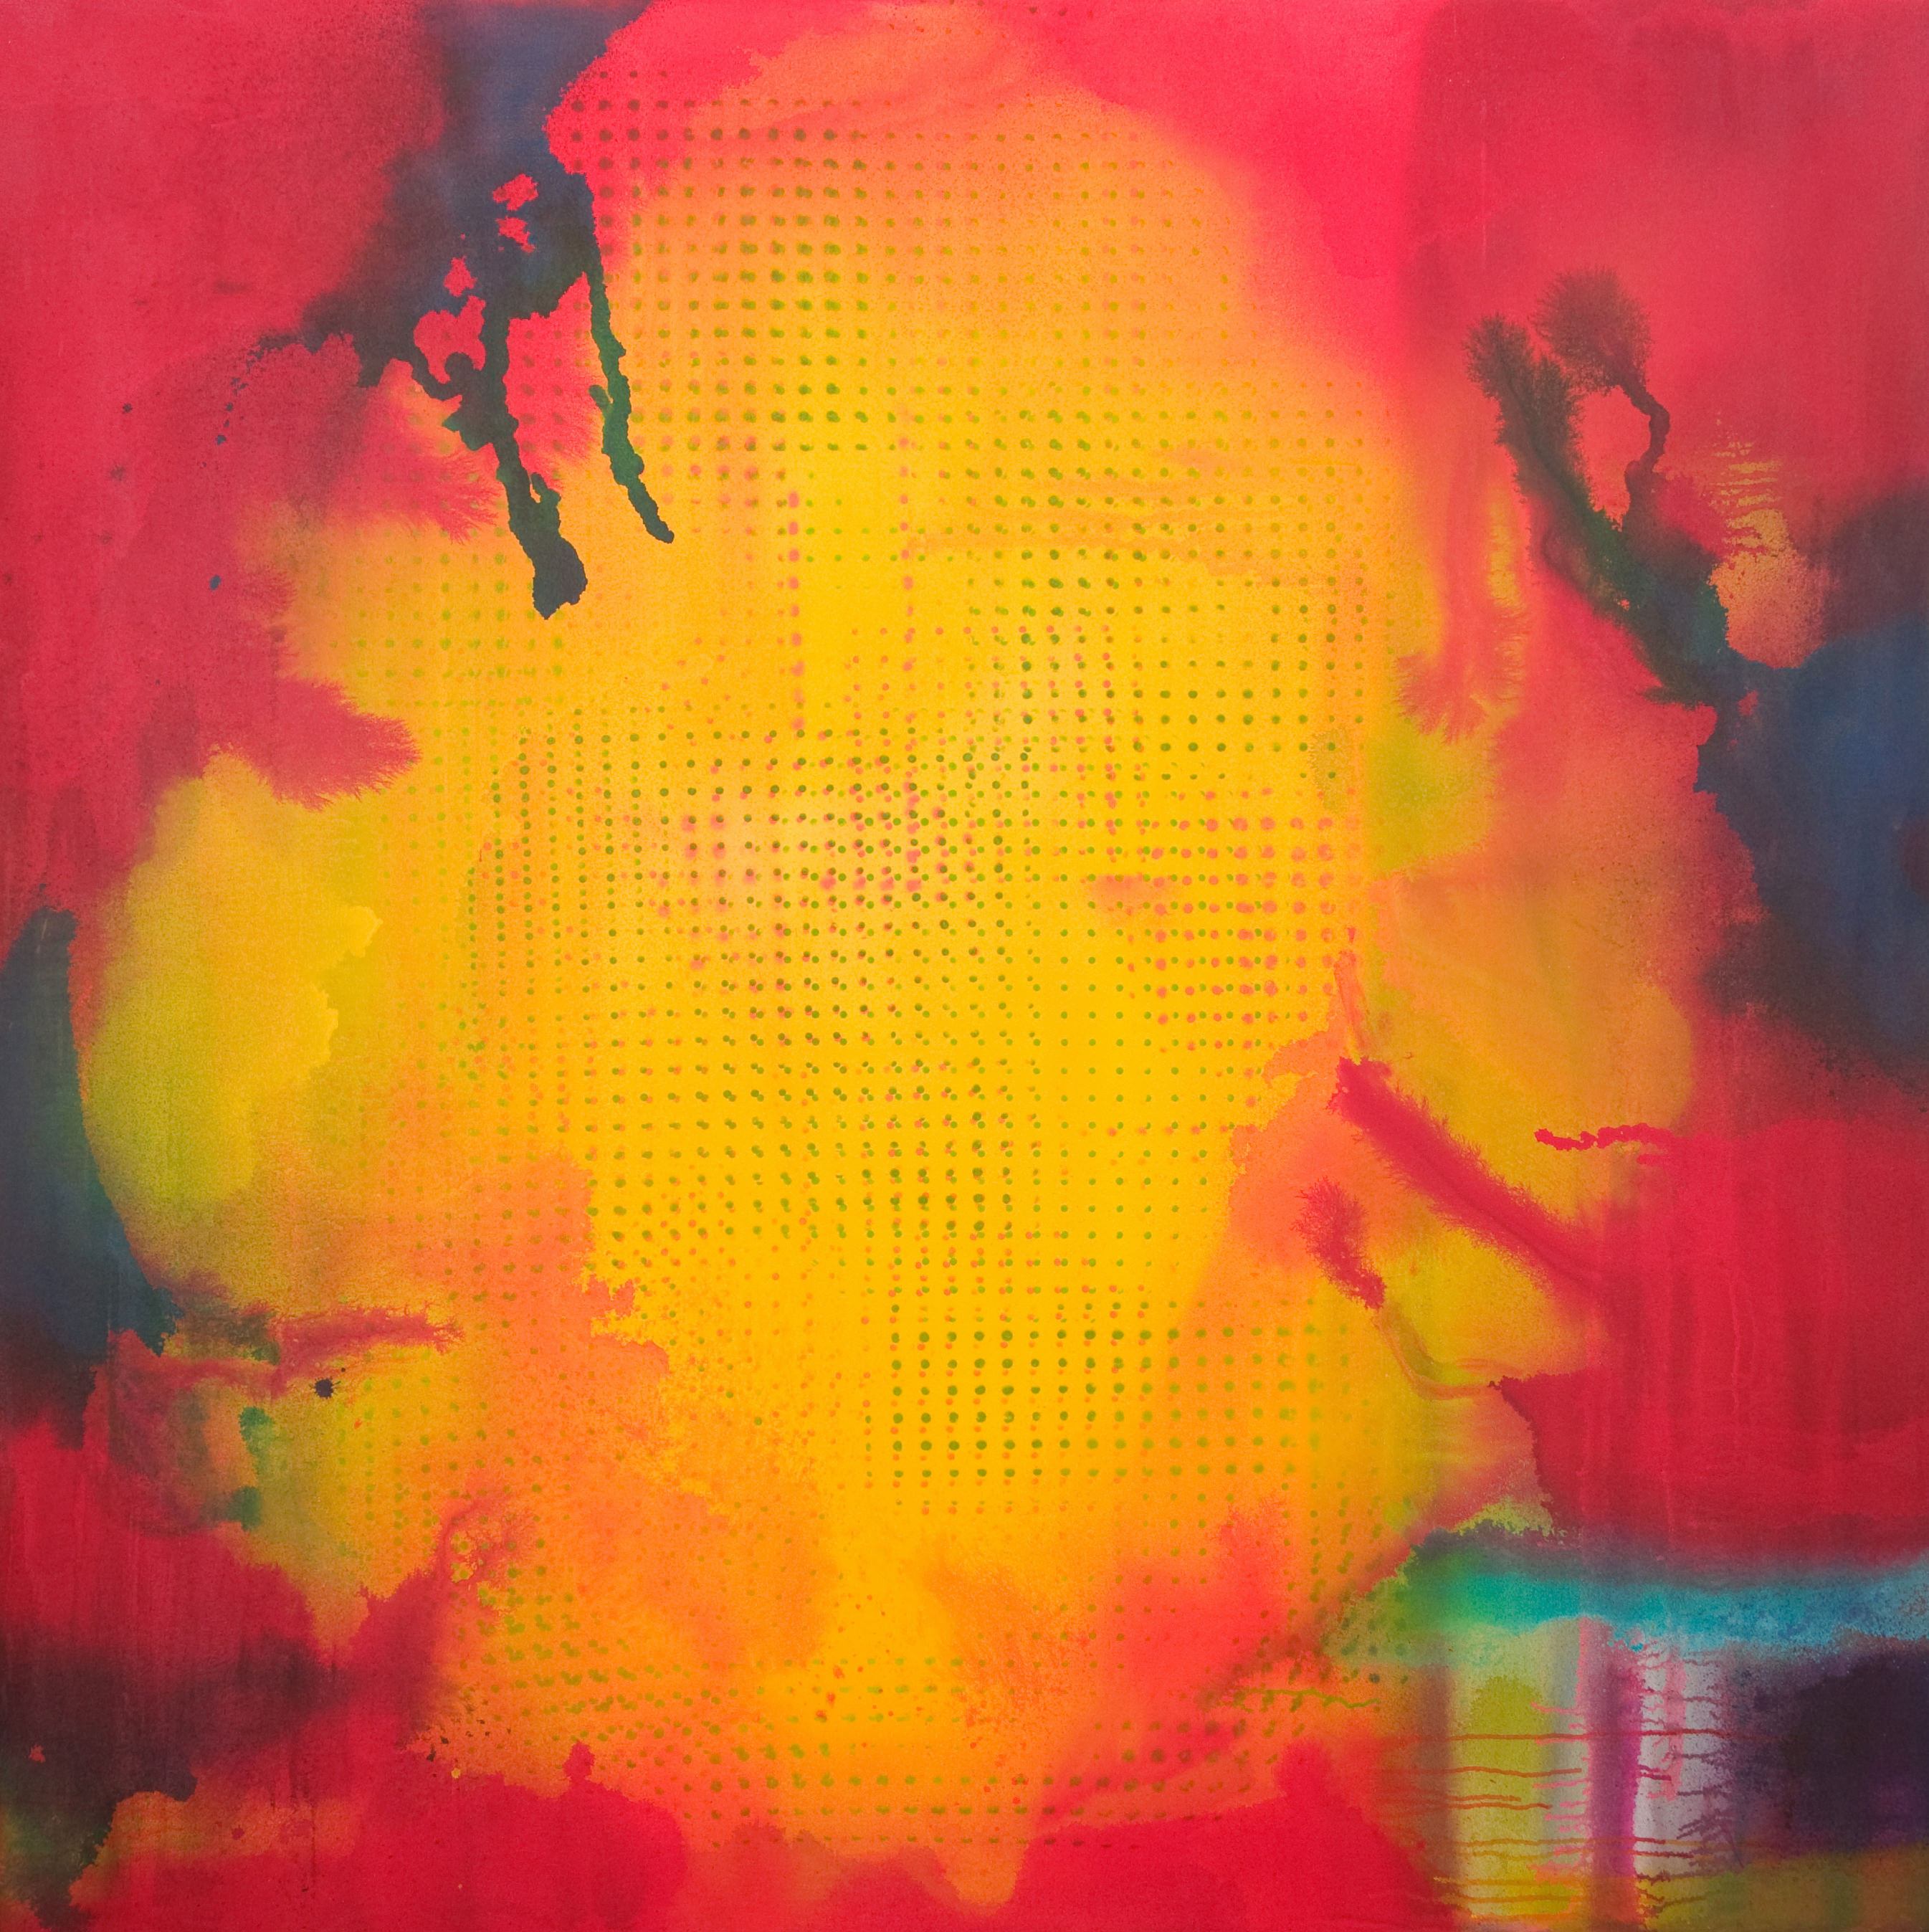 Heliopause (to Surya Lord of Light) | 71 x 71 inches | paint on canvas